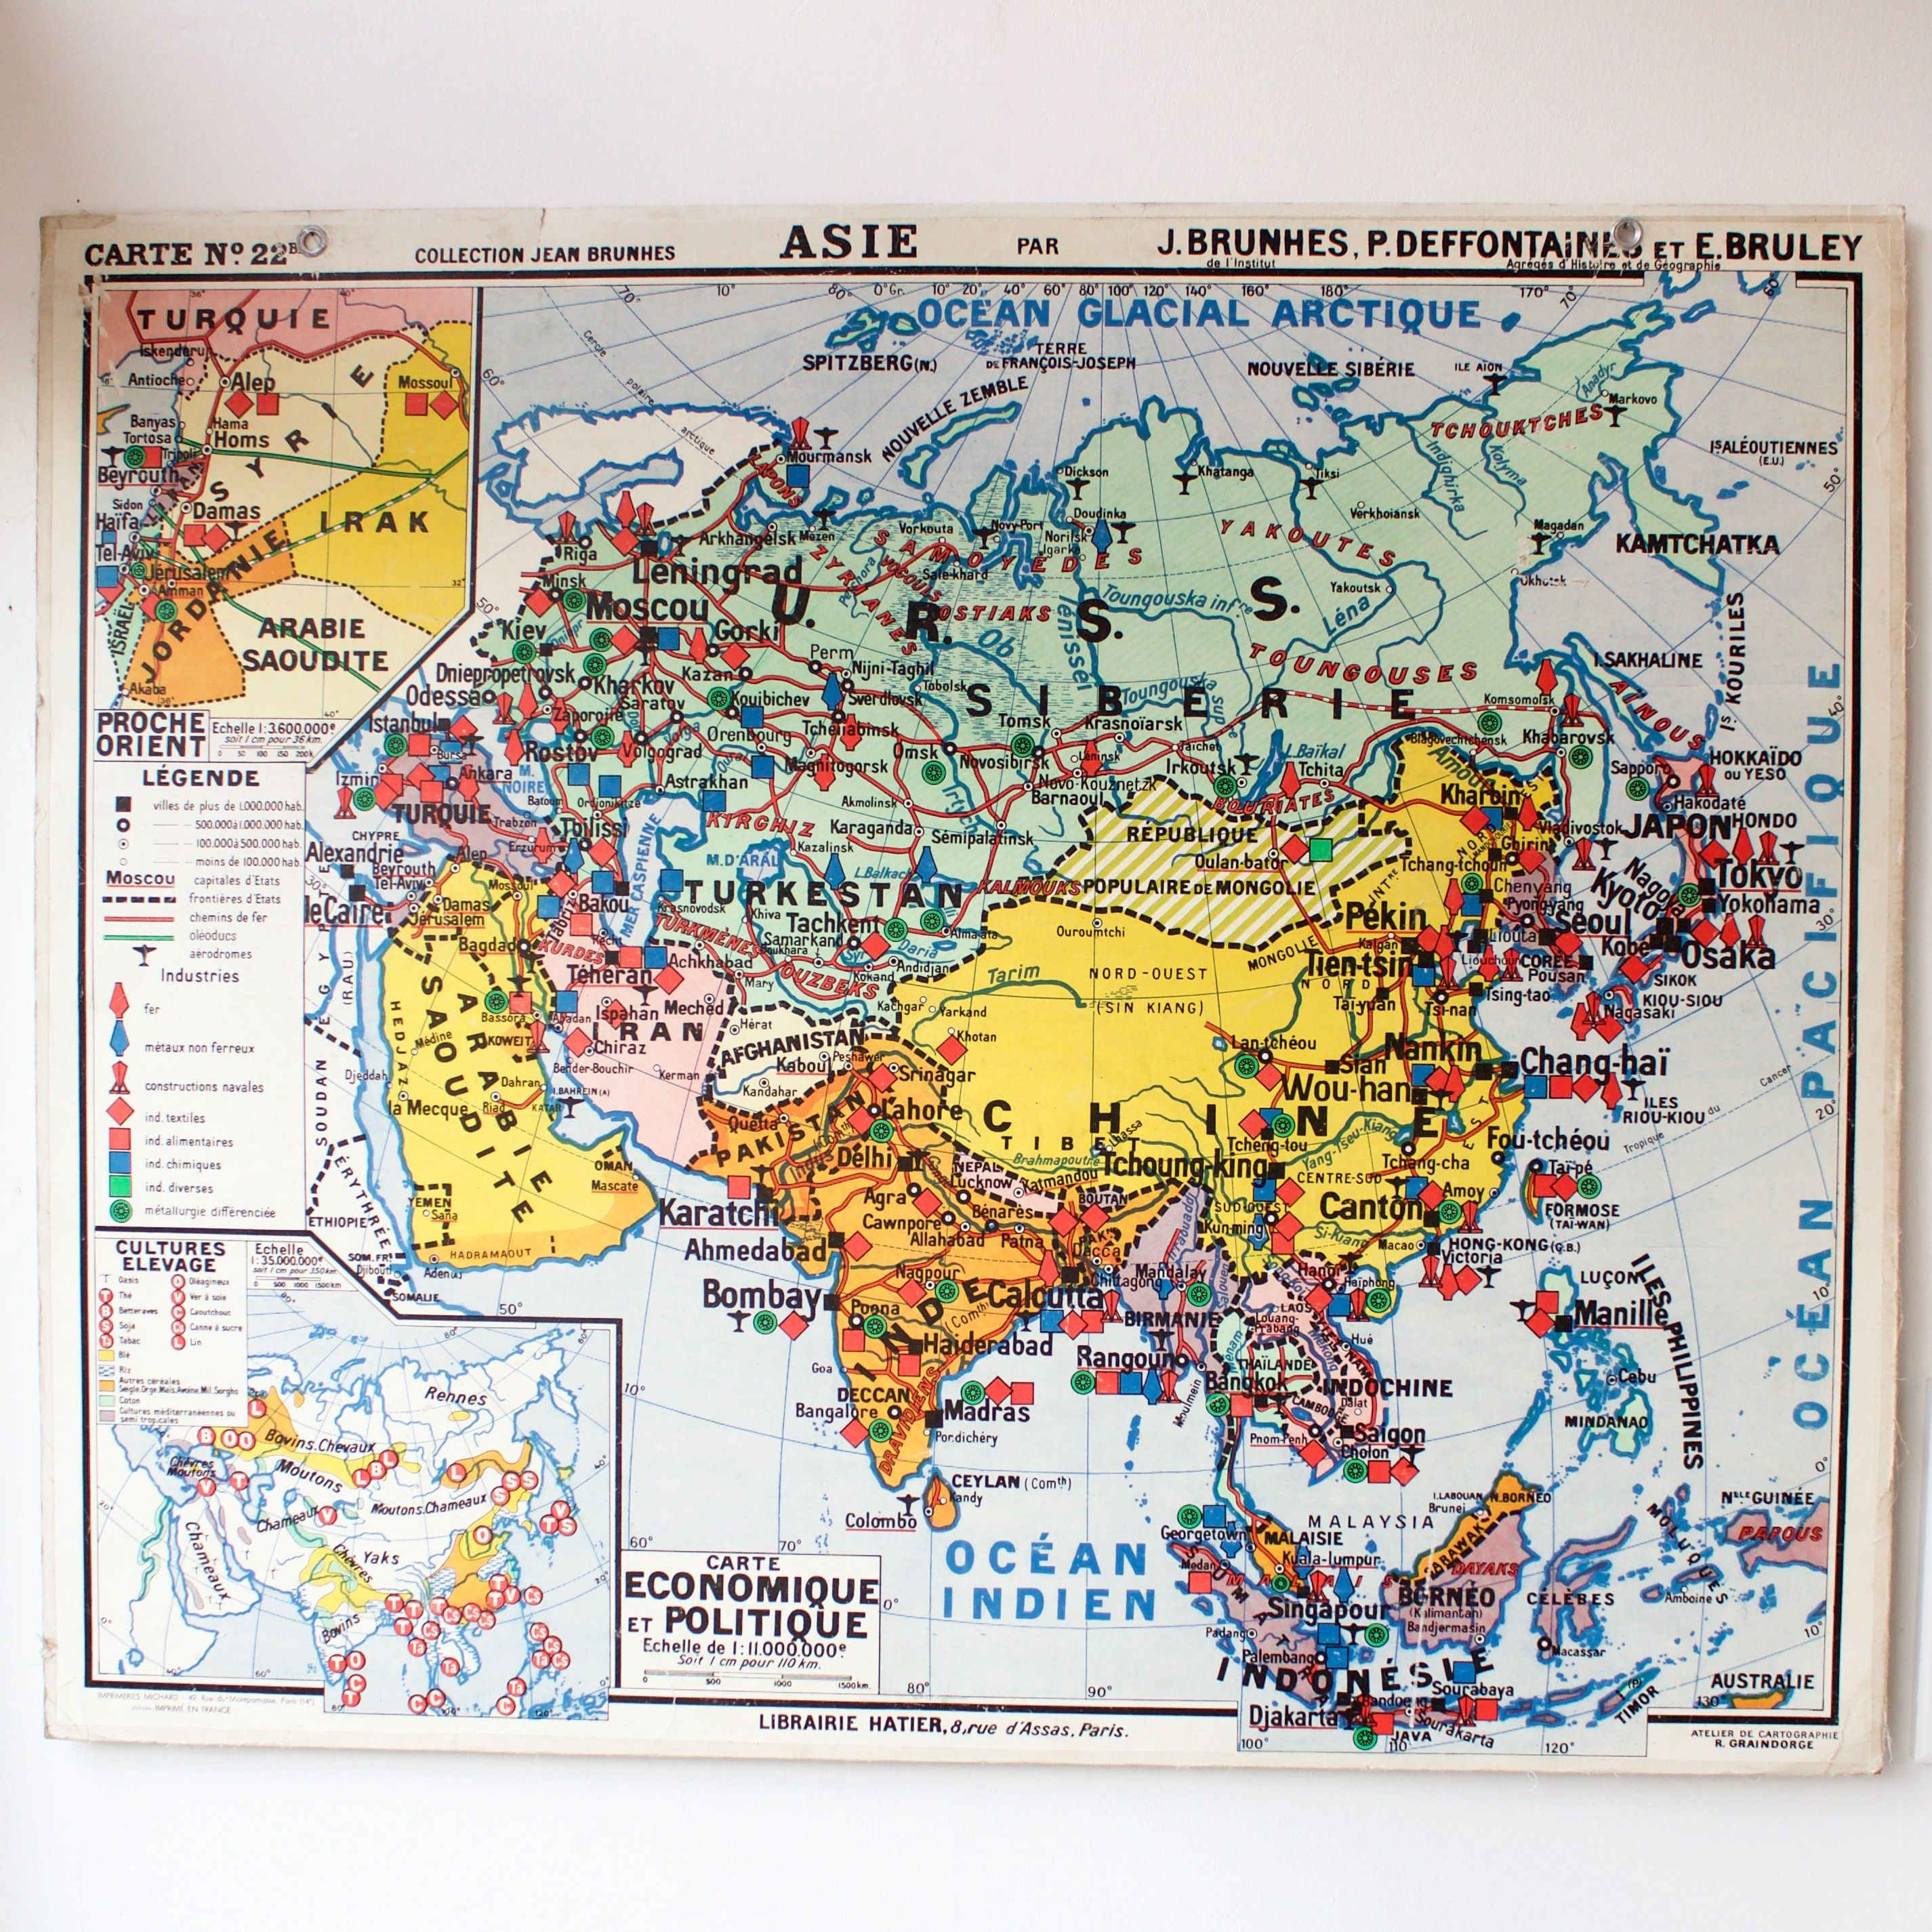 Map Of Asia In French.Carte Scolaire Ancienne N22 Asie French Vintage School Map Asia